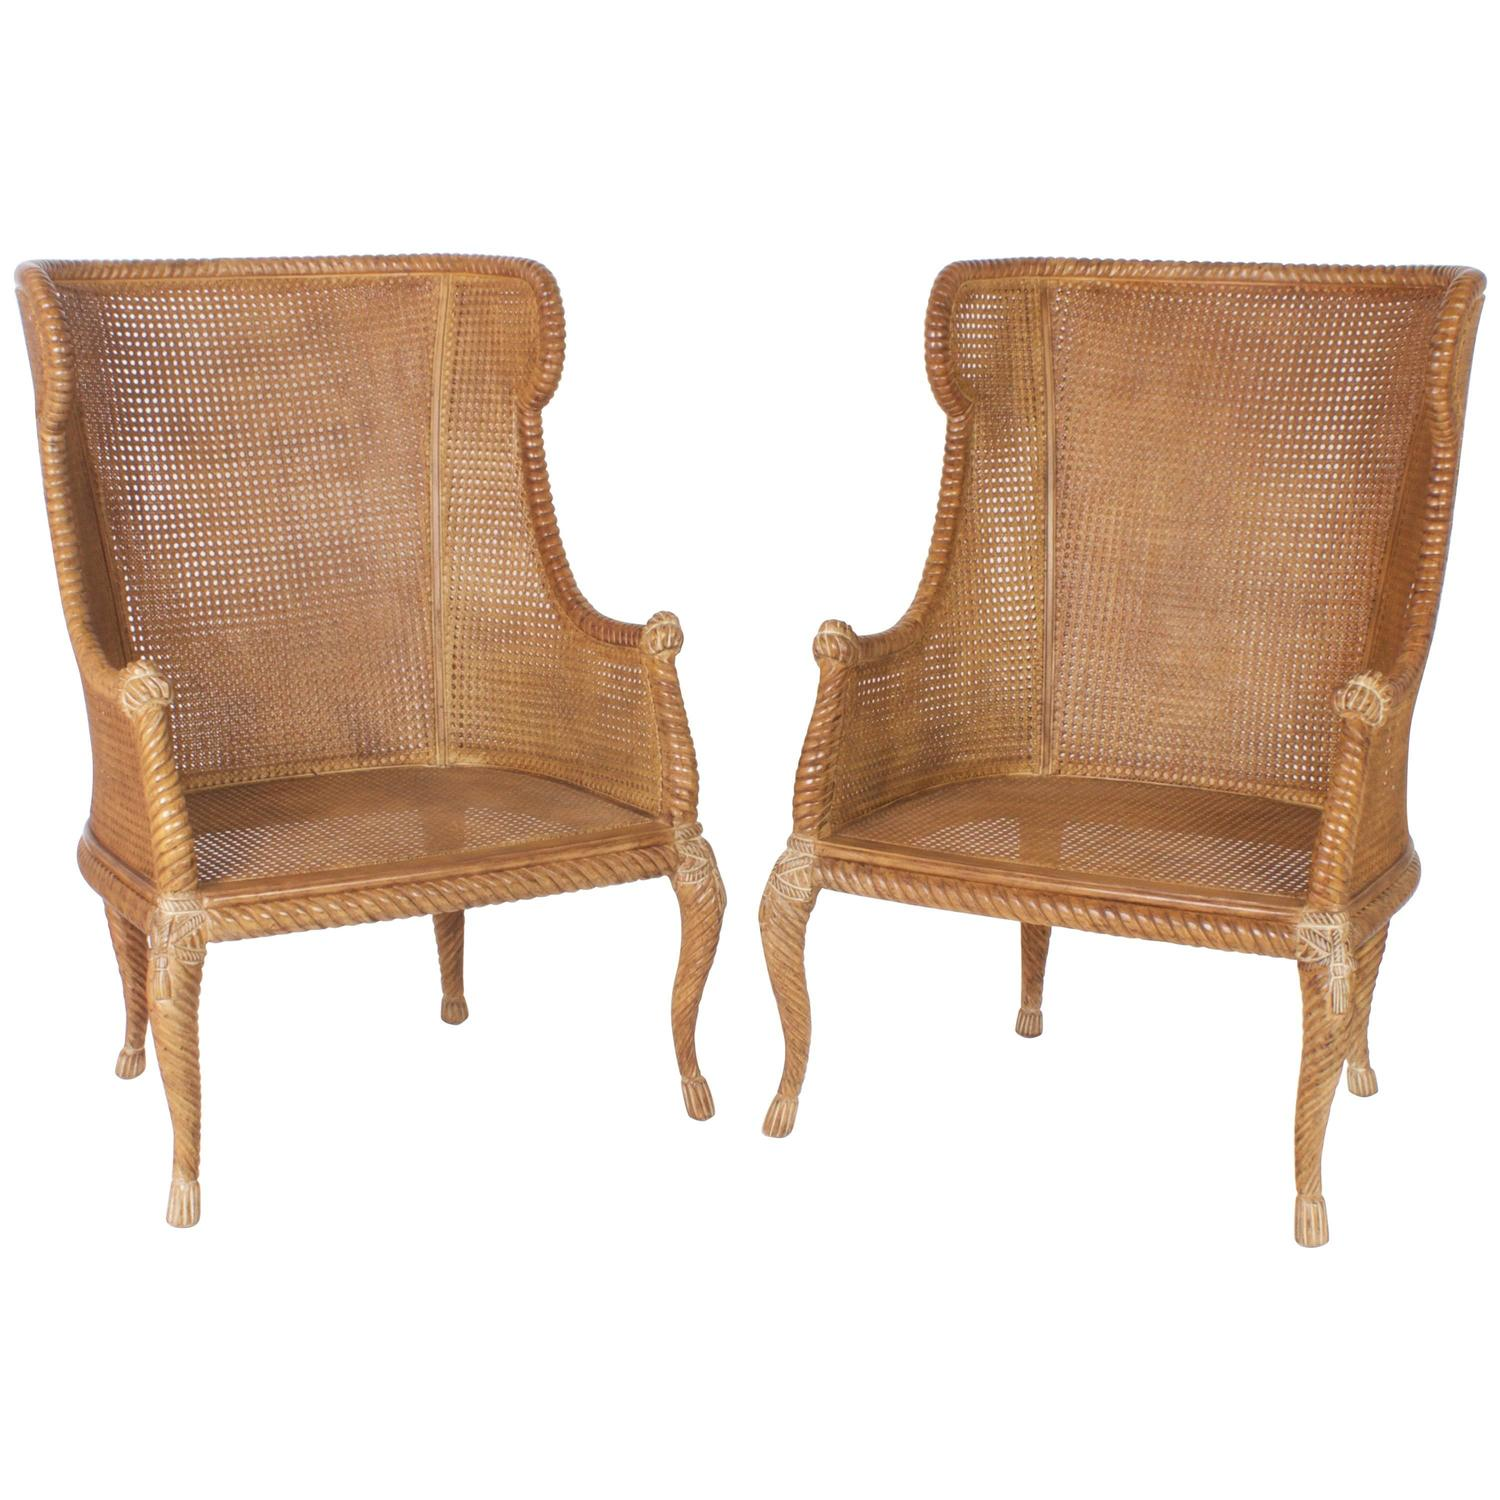 Pair of Mid Century Italian Caned Wingback Chairs at 1stdibs